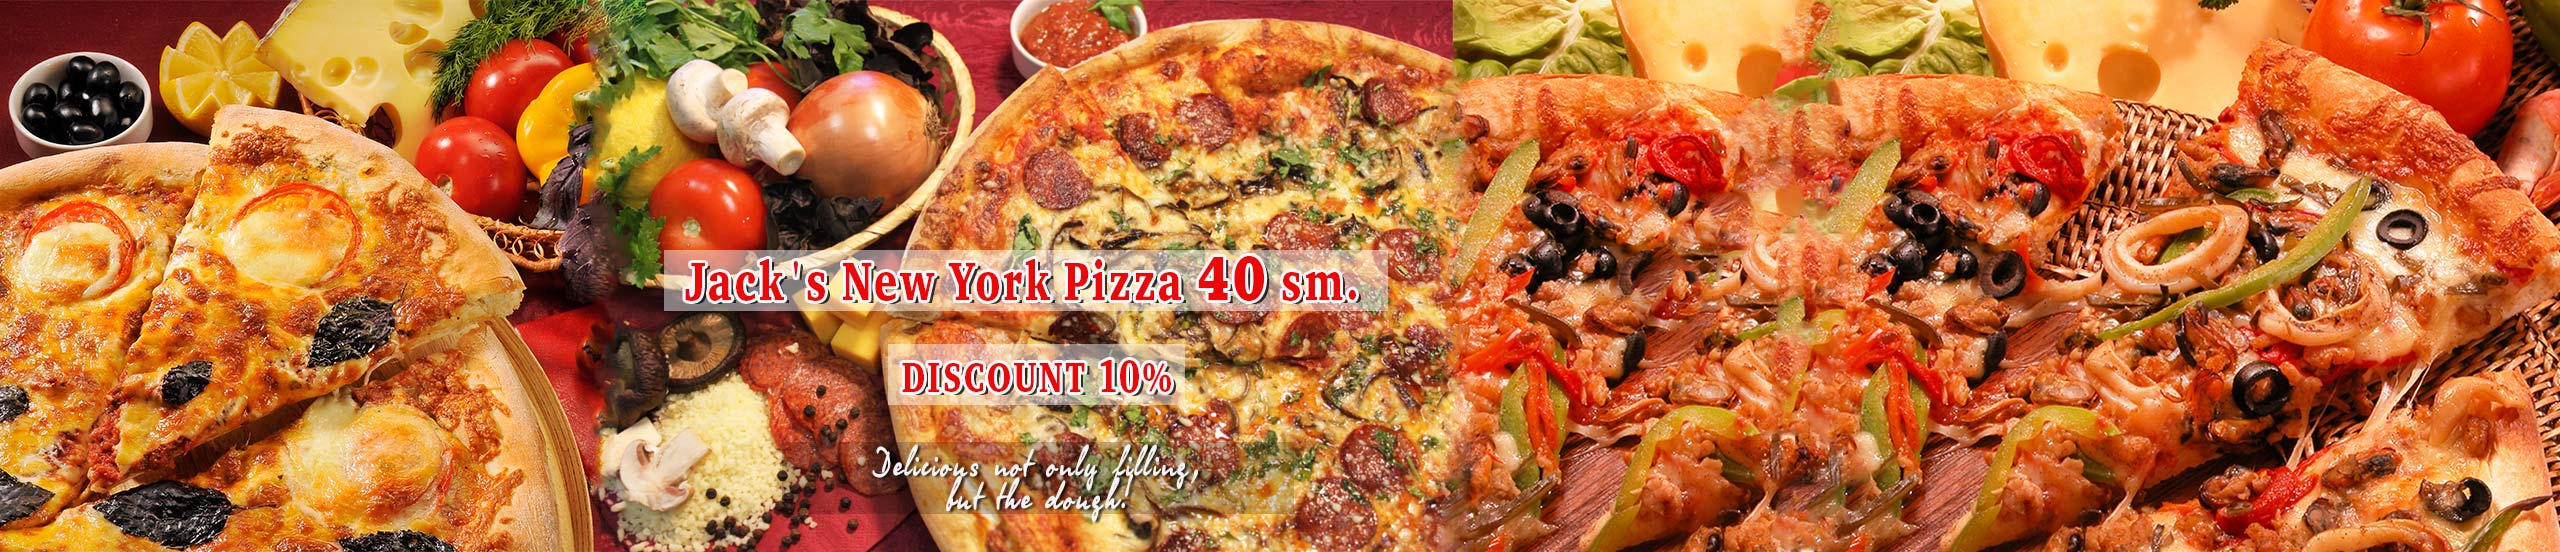 New York Pizza discount